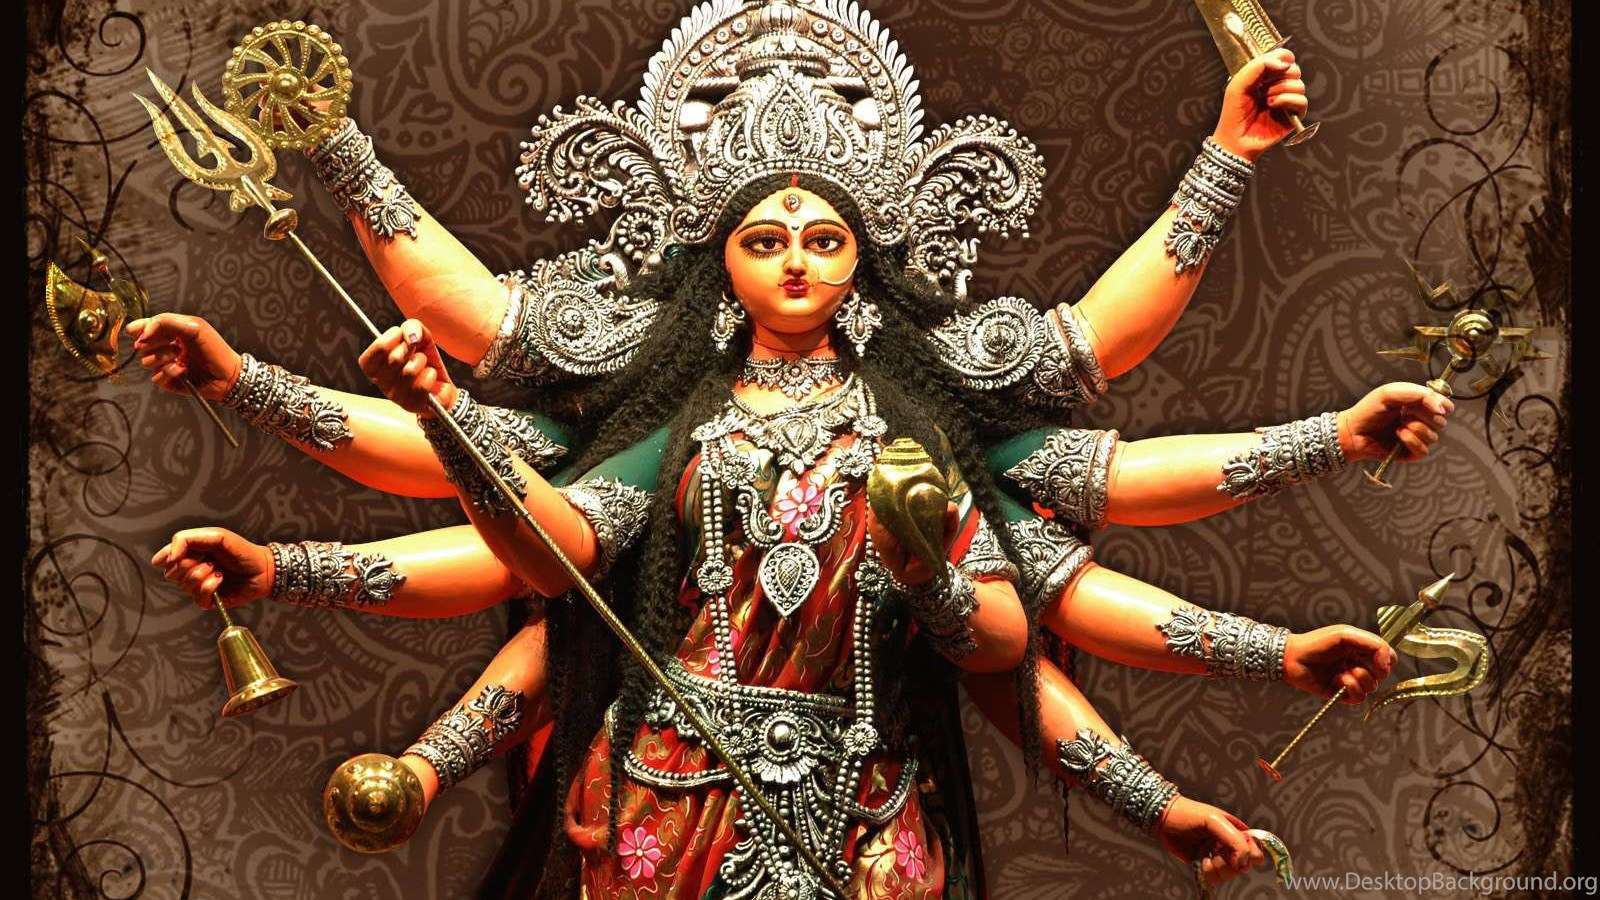 Durga Puja Durga Mata Picture Images Photos And Hd Wallpapers Desktop Background